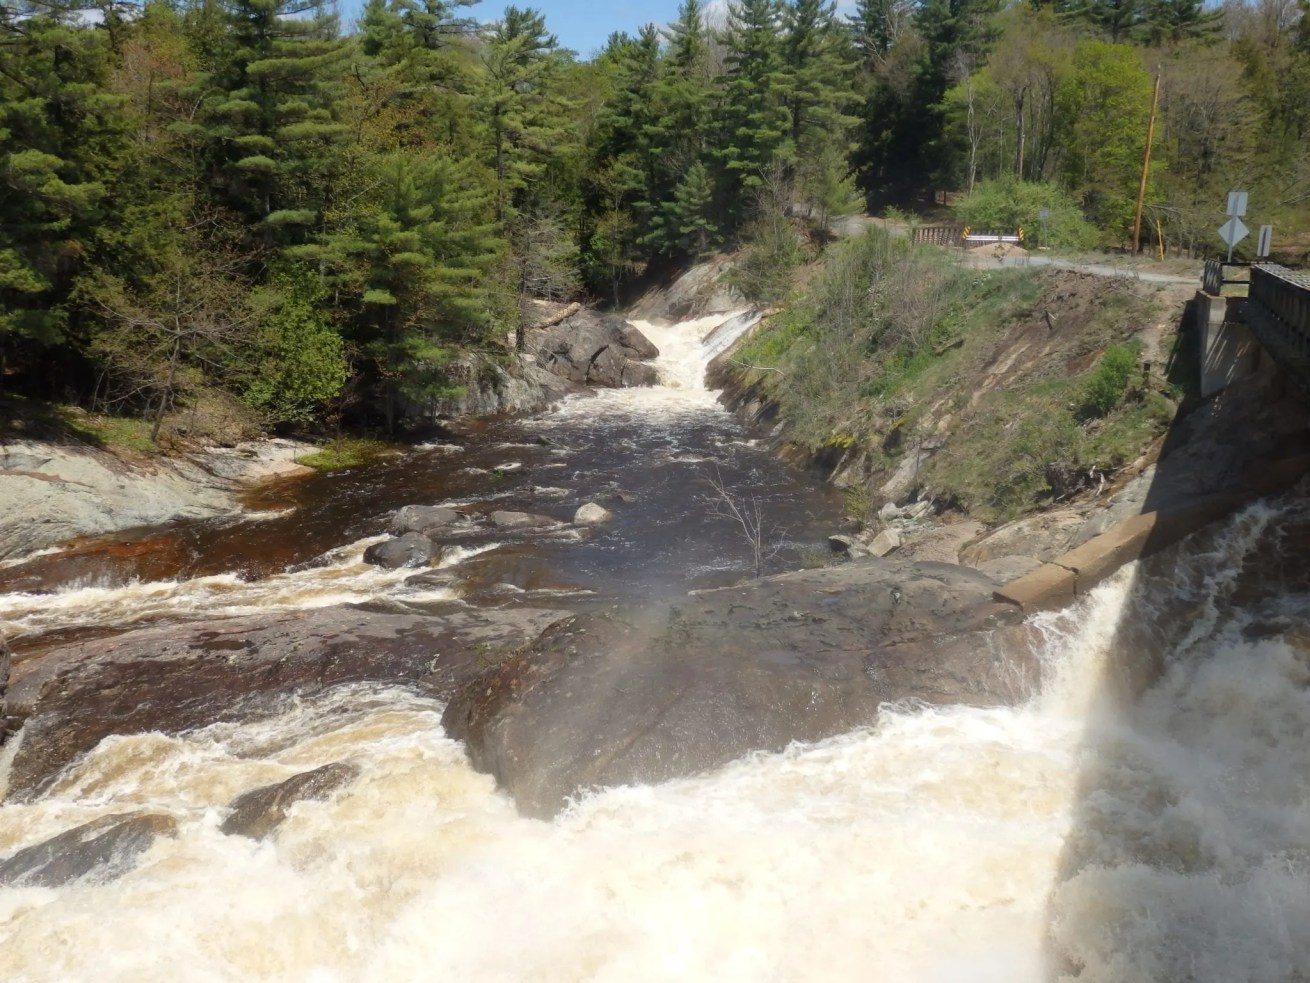 T-Bone Falls, Moose River, Lewis County, New York